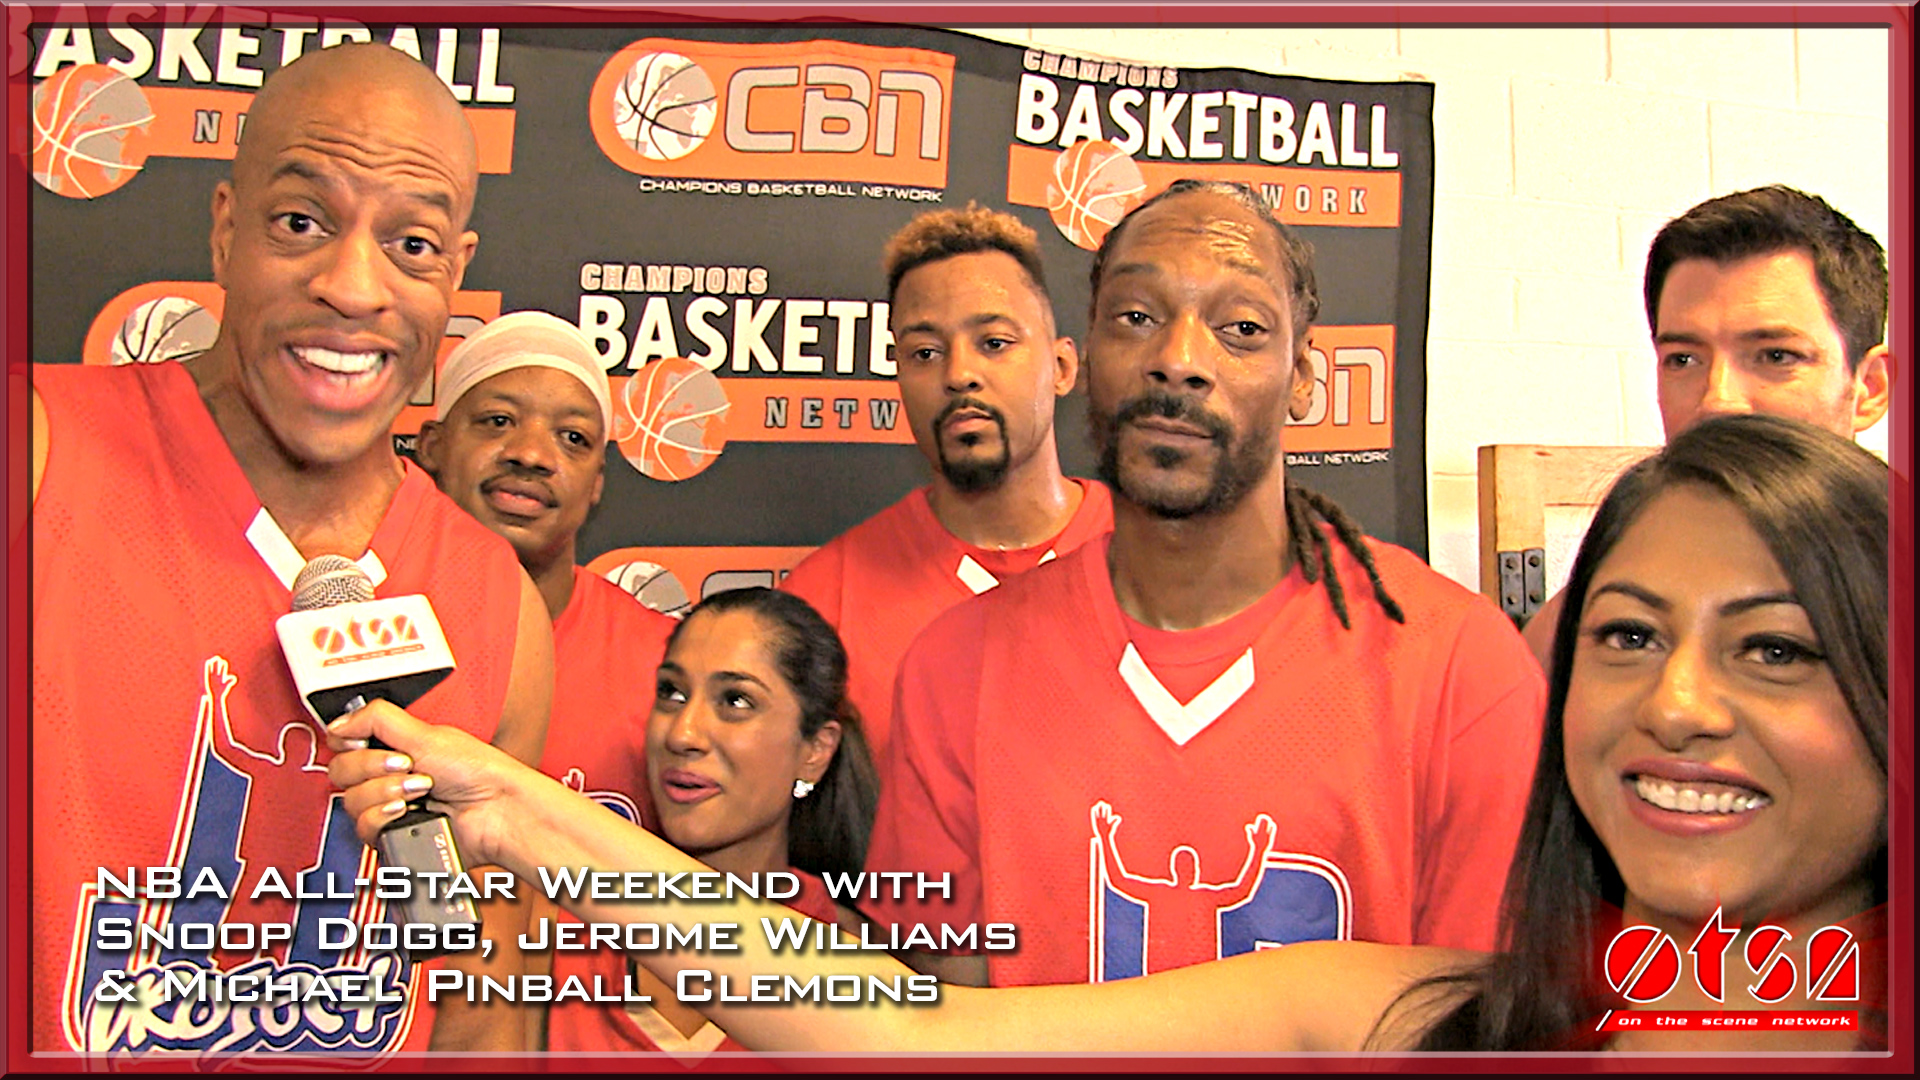 NBA All-Star Weekend with Snoop Dogg and Jerome Williams